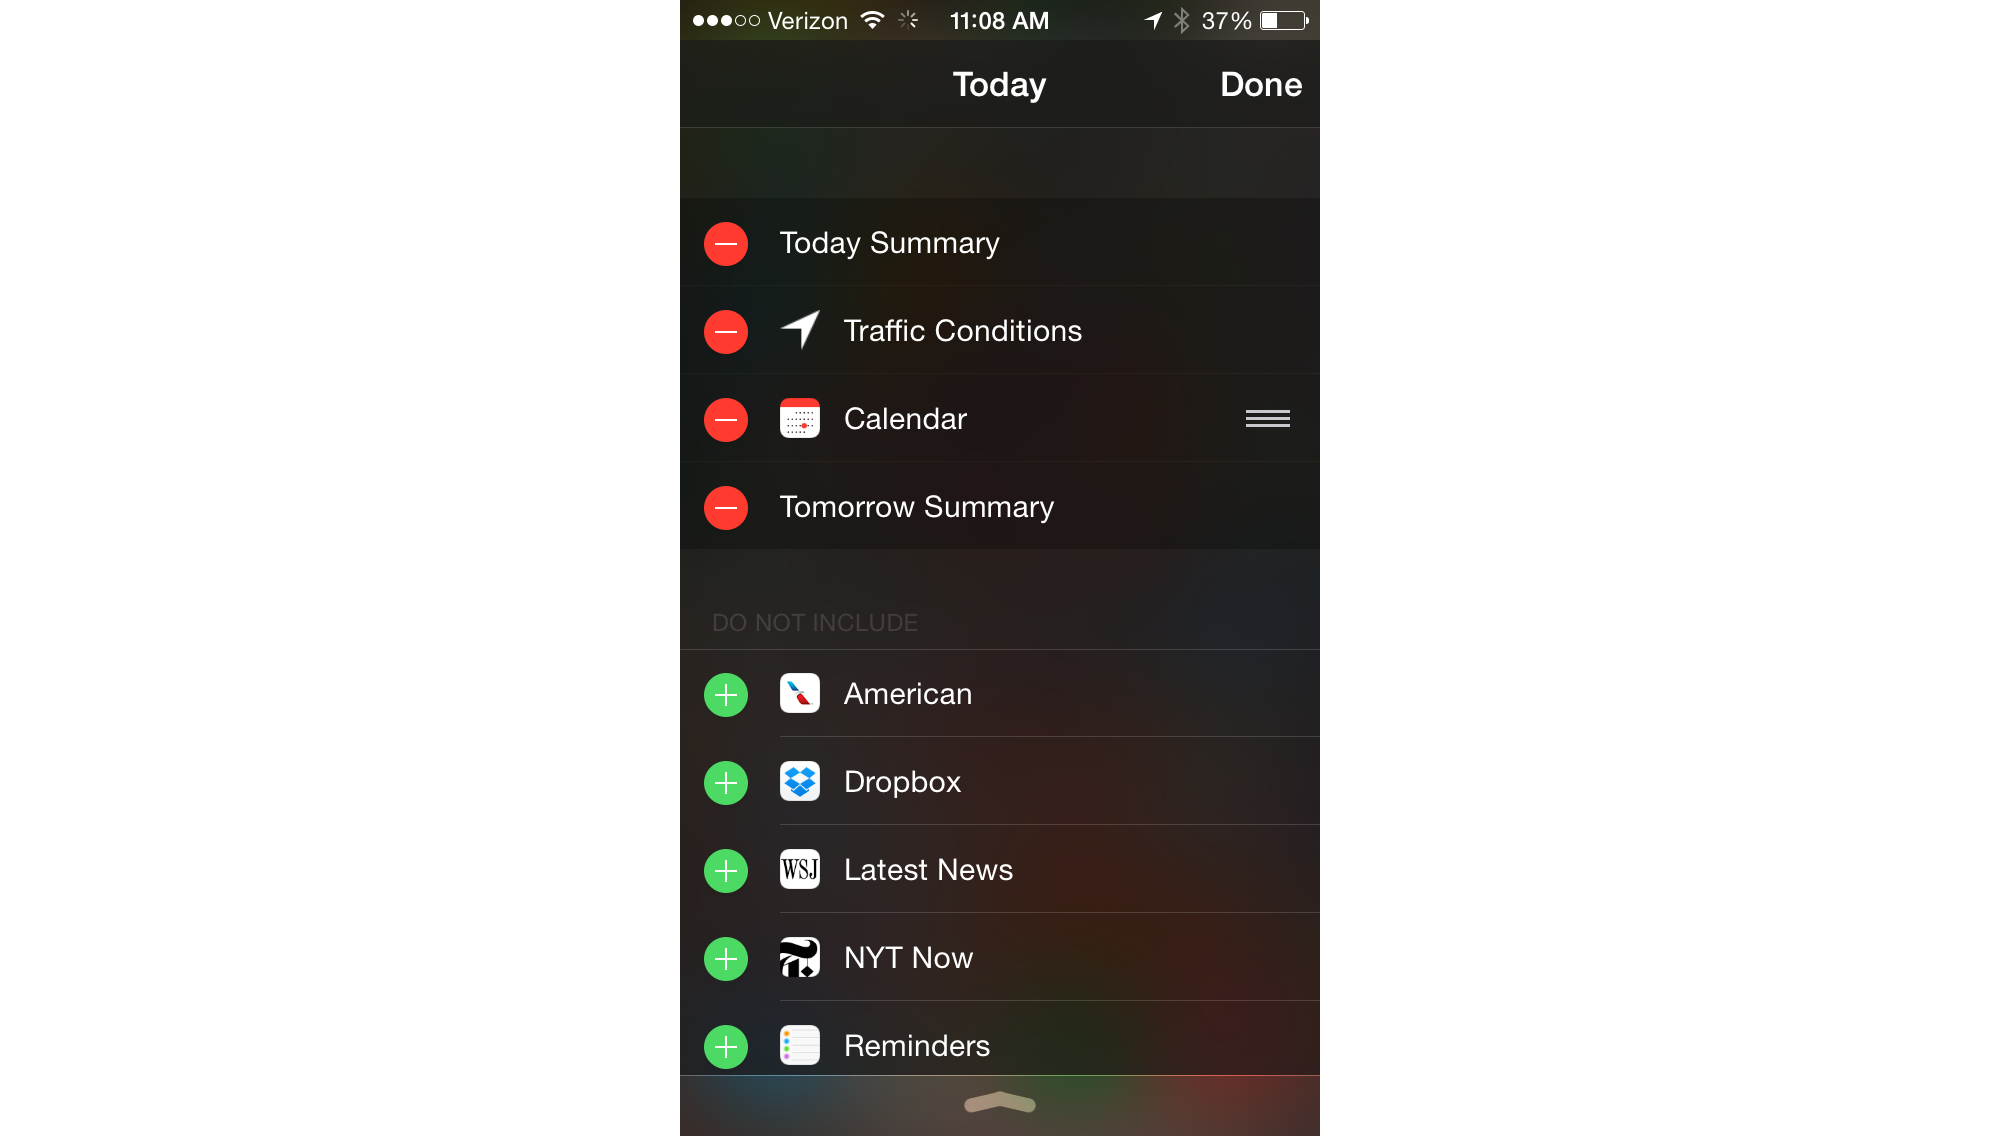 IOS 8 Has Widgets! Here's How to Use Them